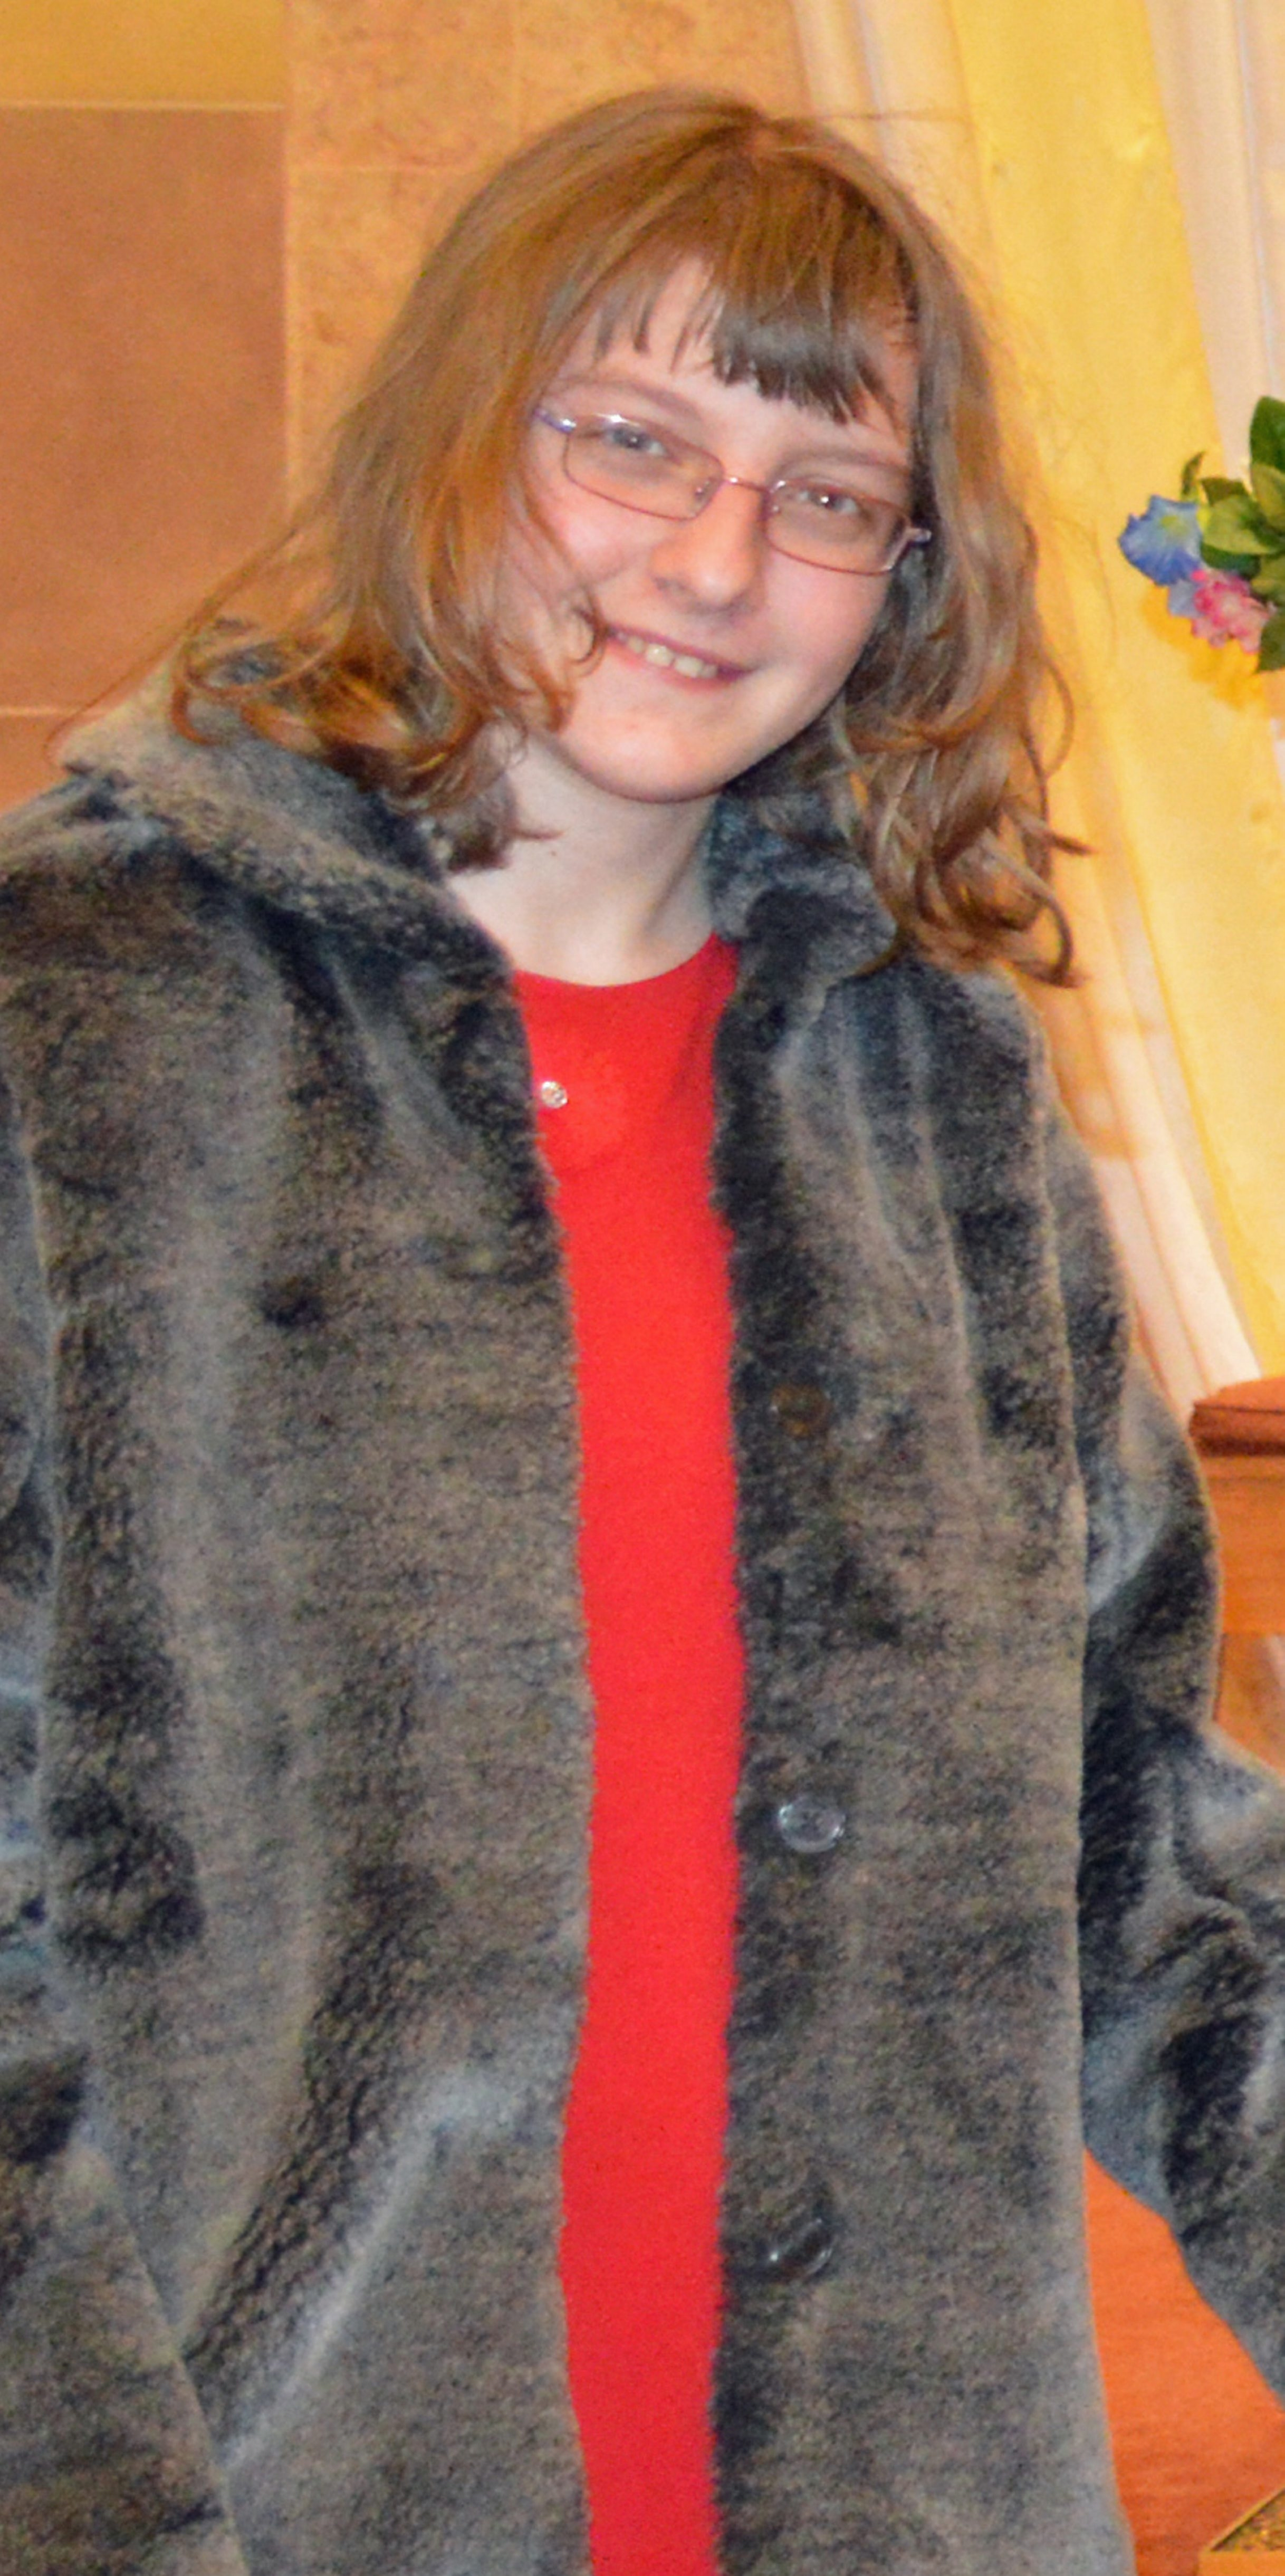 Grace Pesarchick was found safe early this morning.